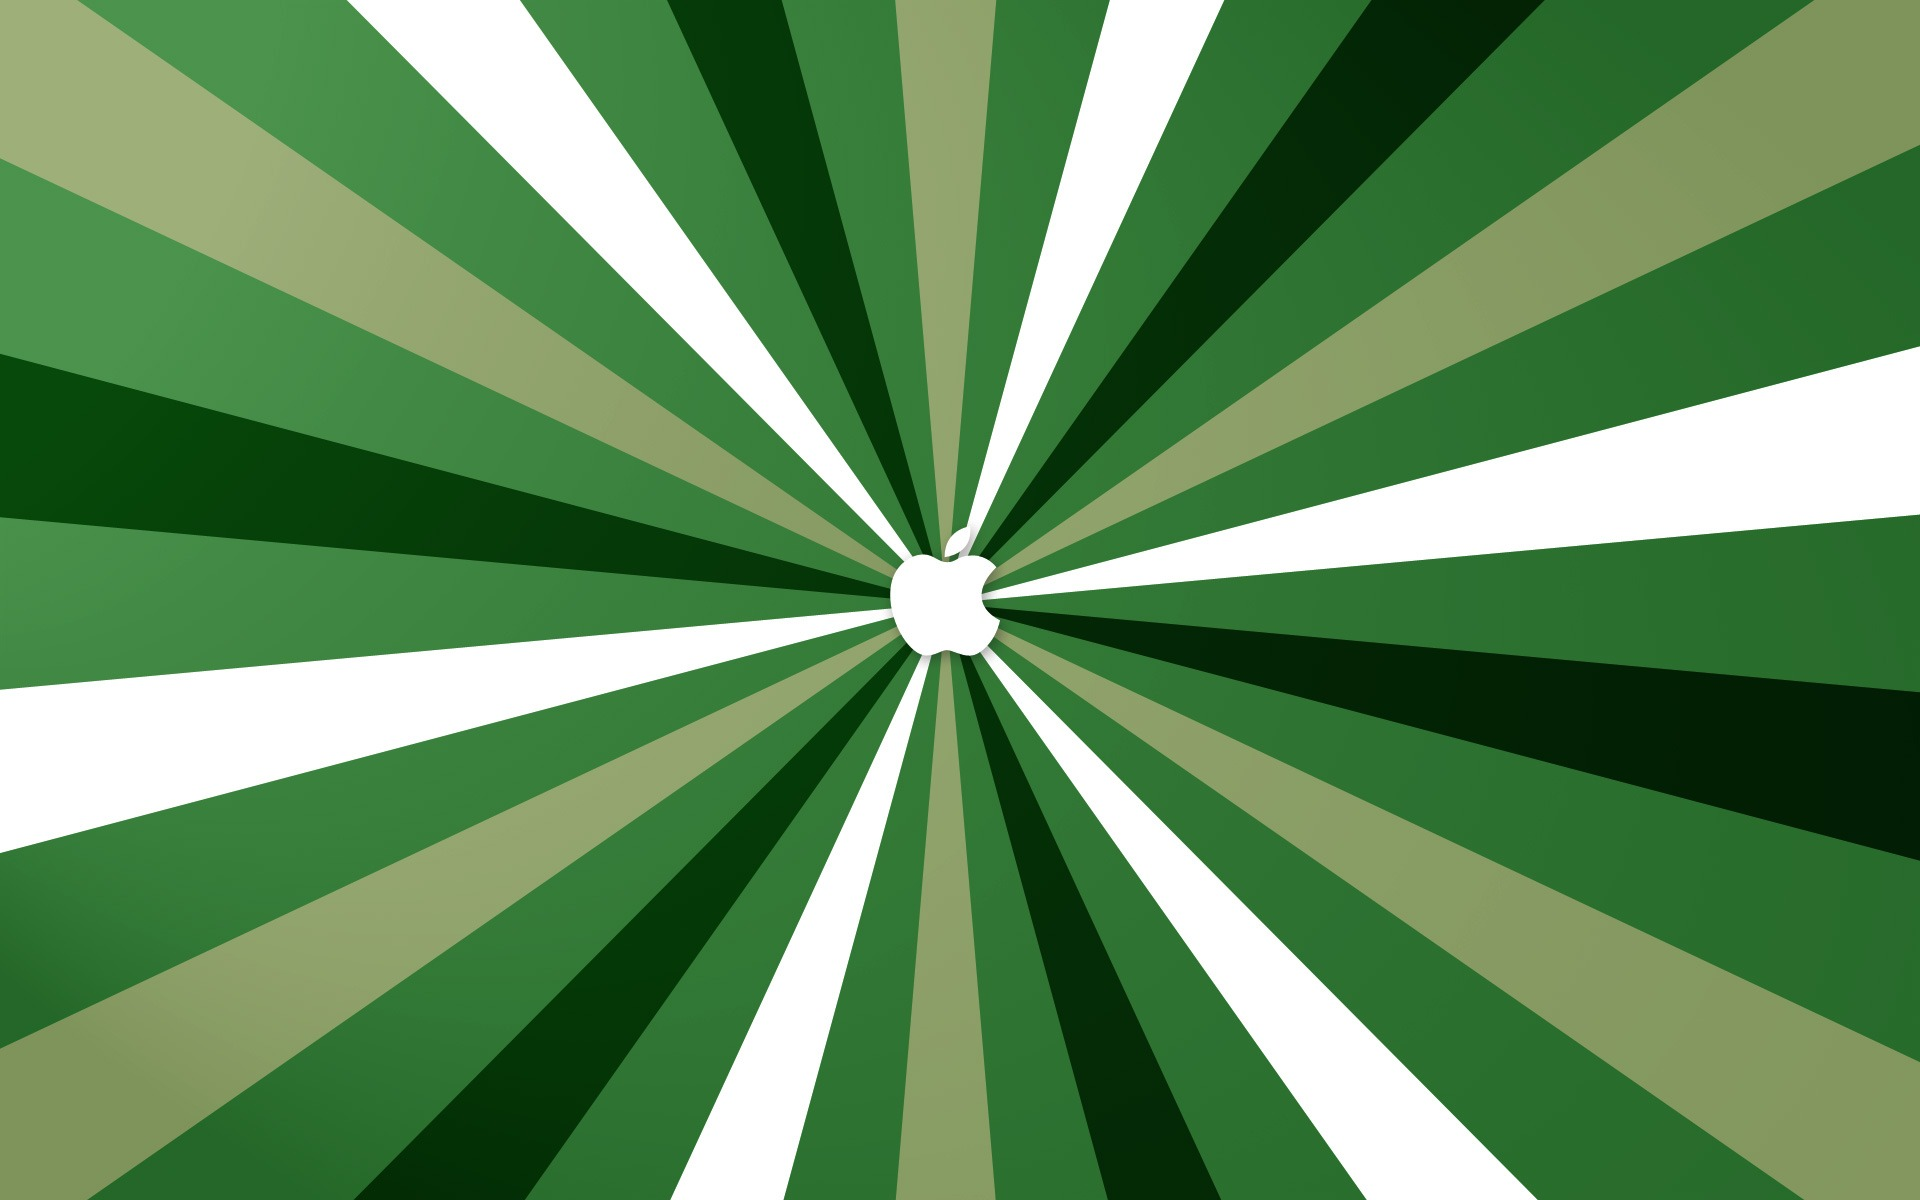 Green Stripes Apple HD